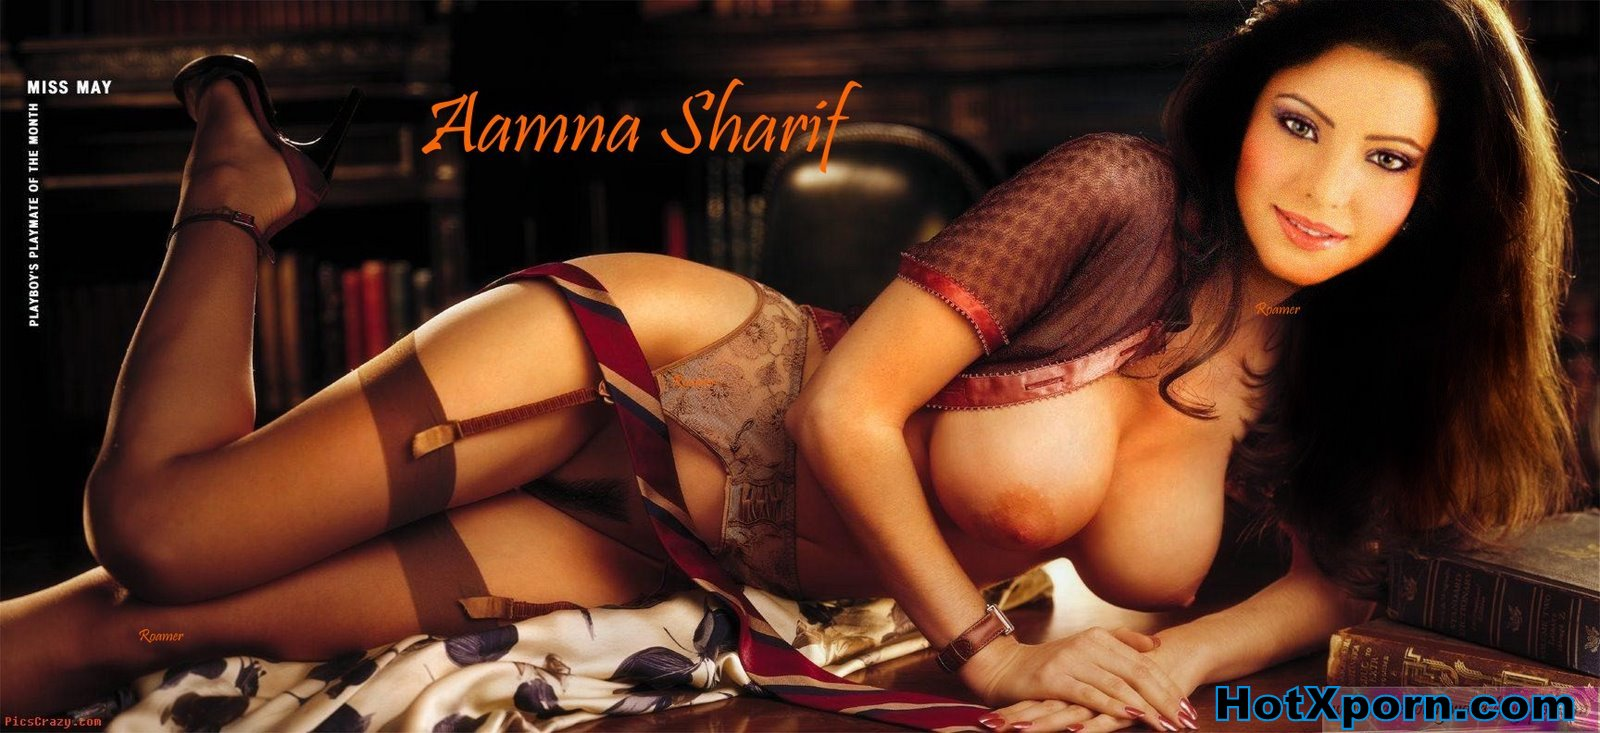 Nude Hot Bollywood Actress Amna Sharif Sleeping Nude Showing her hairy Pussy And Boobs